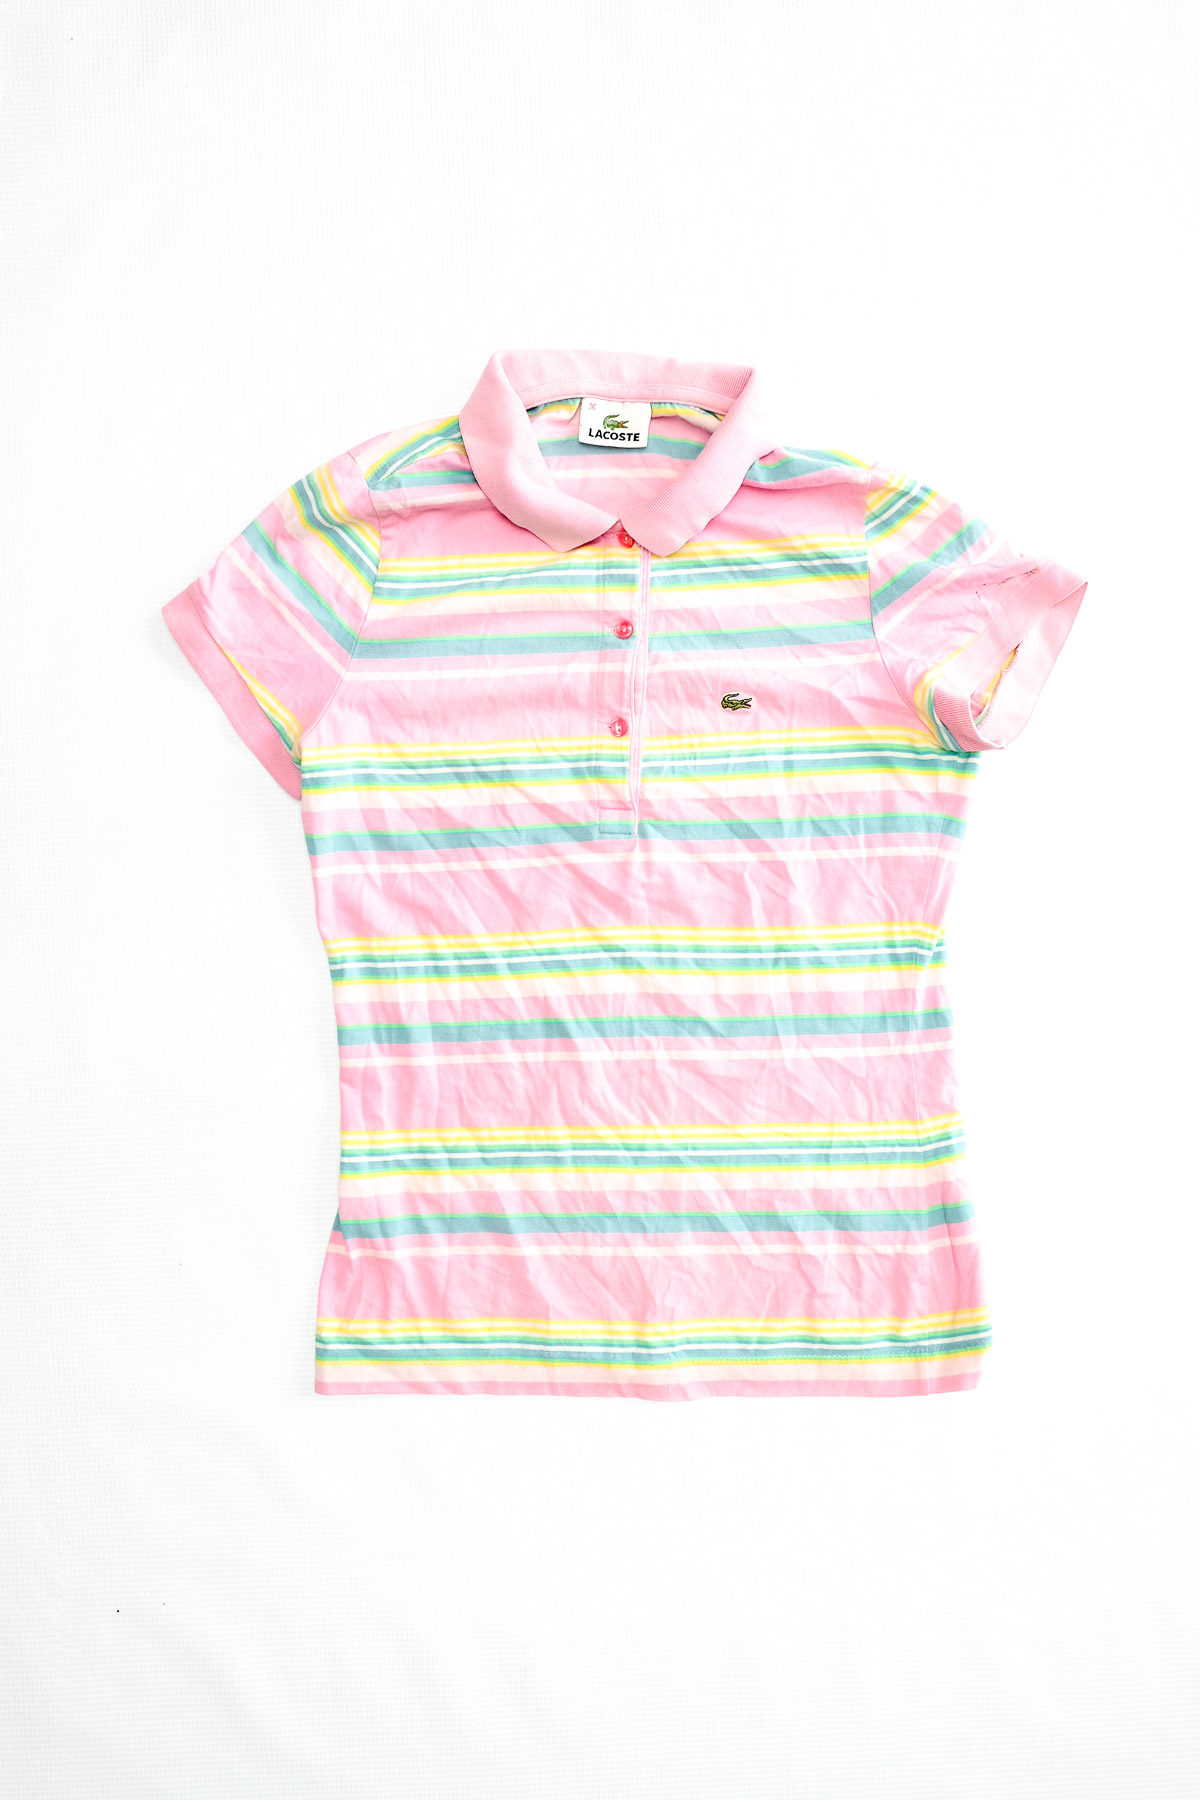 Lacoste POLO VINTAGE Pink